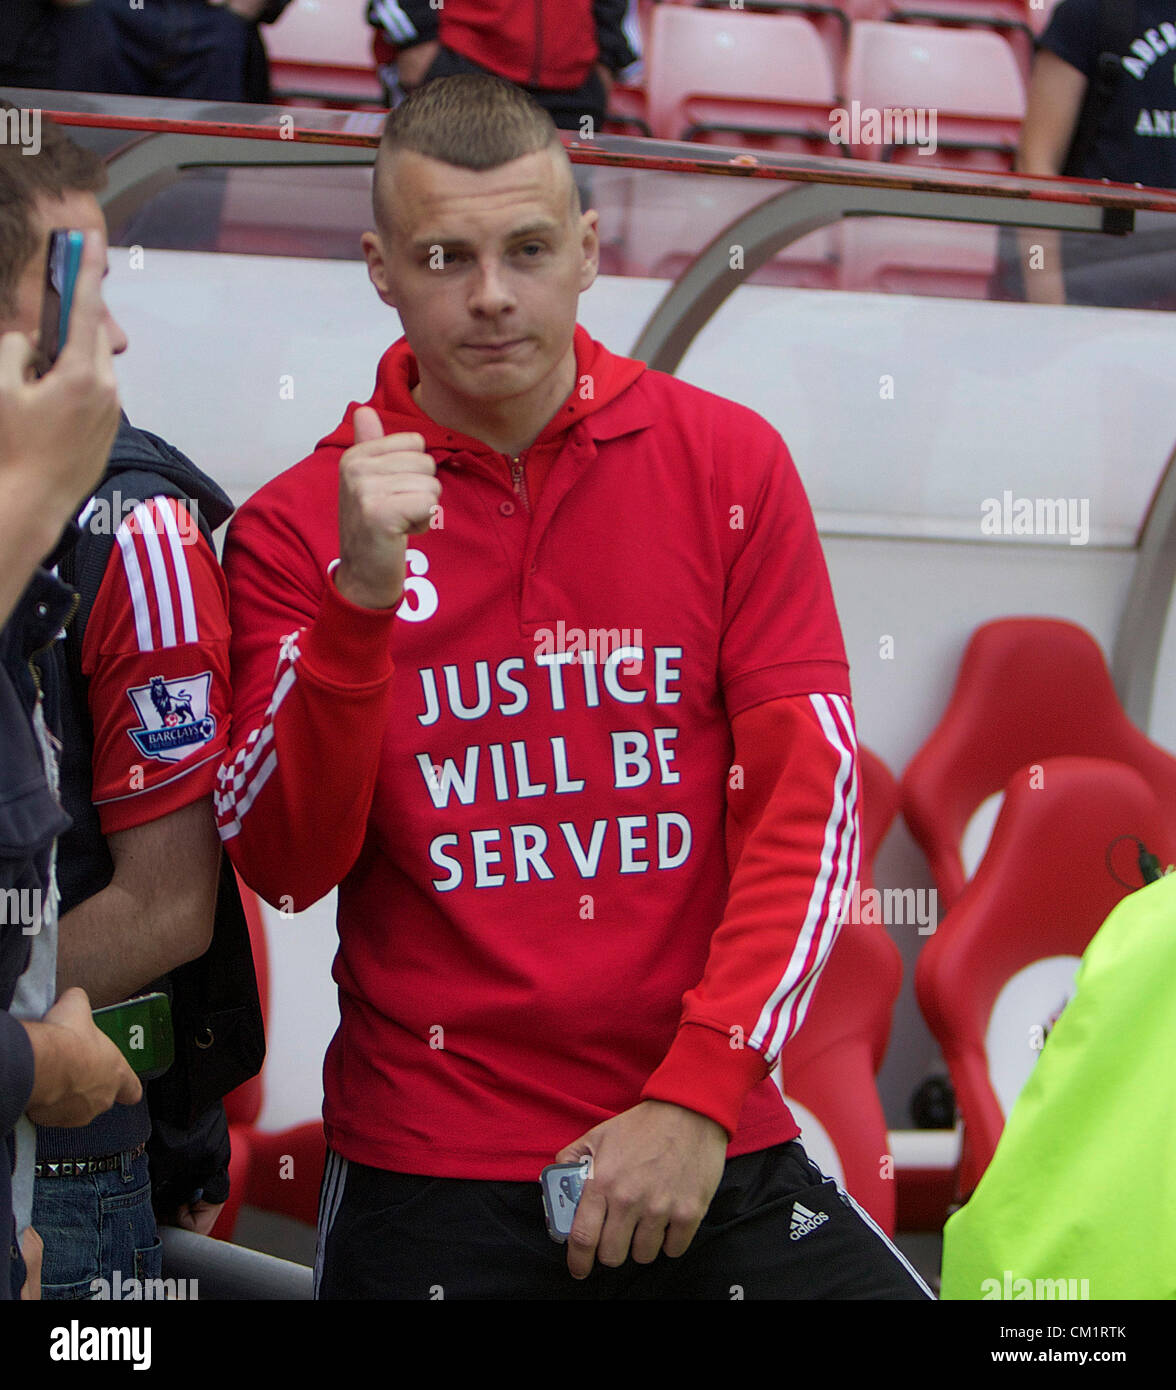 Barclays English Premier League Football - Sunderland AFC v Liverpool FC.Sunderland fan shows his support for Liverpool - Stock Image